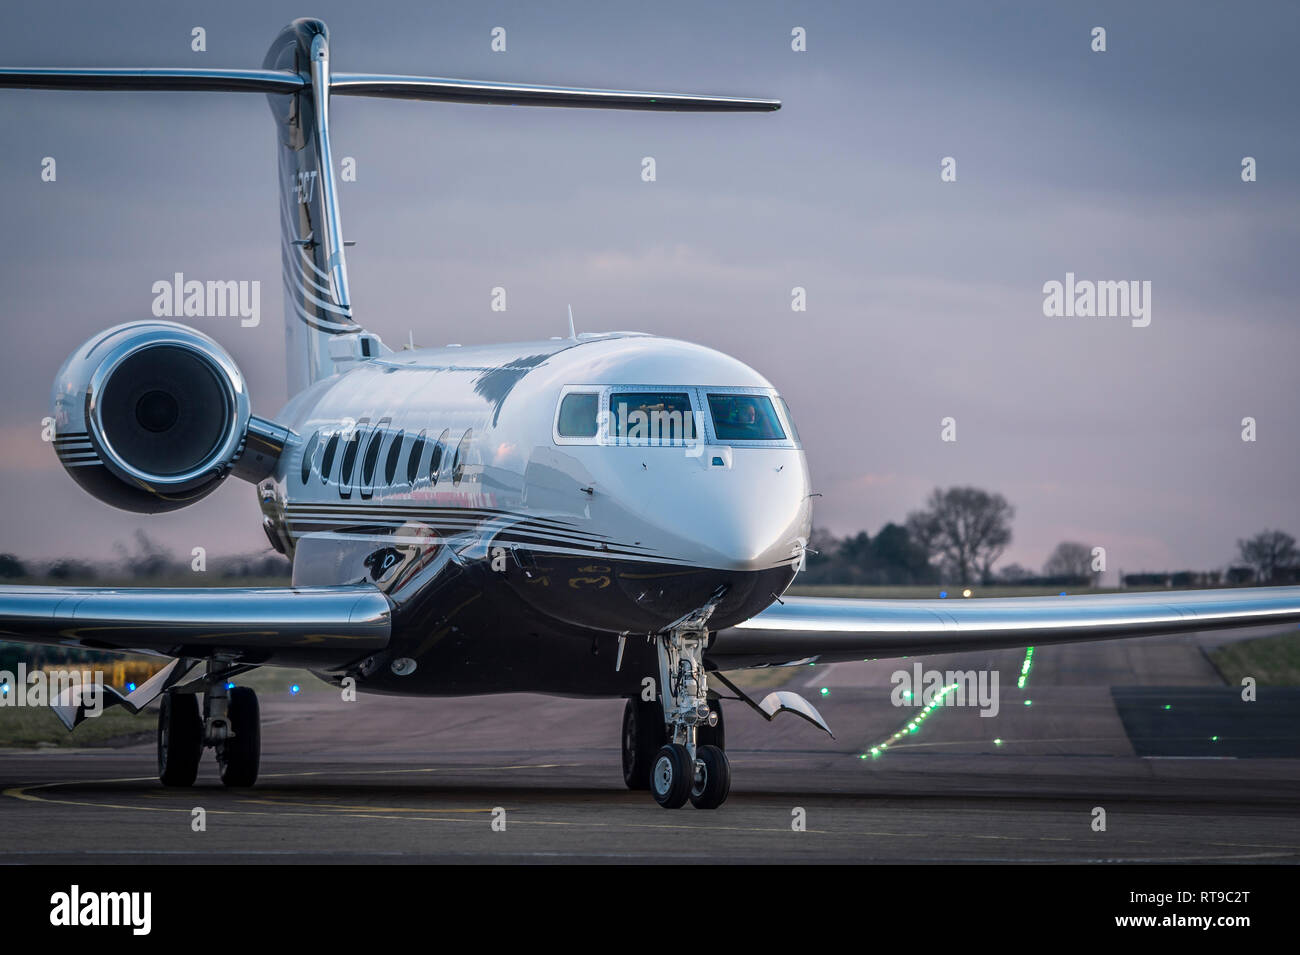 Jet aircraft starting to taxi onto the runway at Luton airport, England. - Stock Image